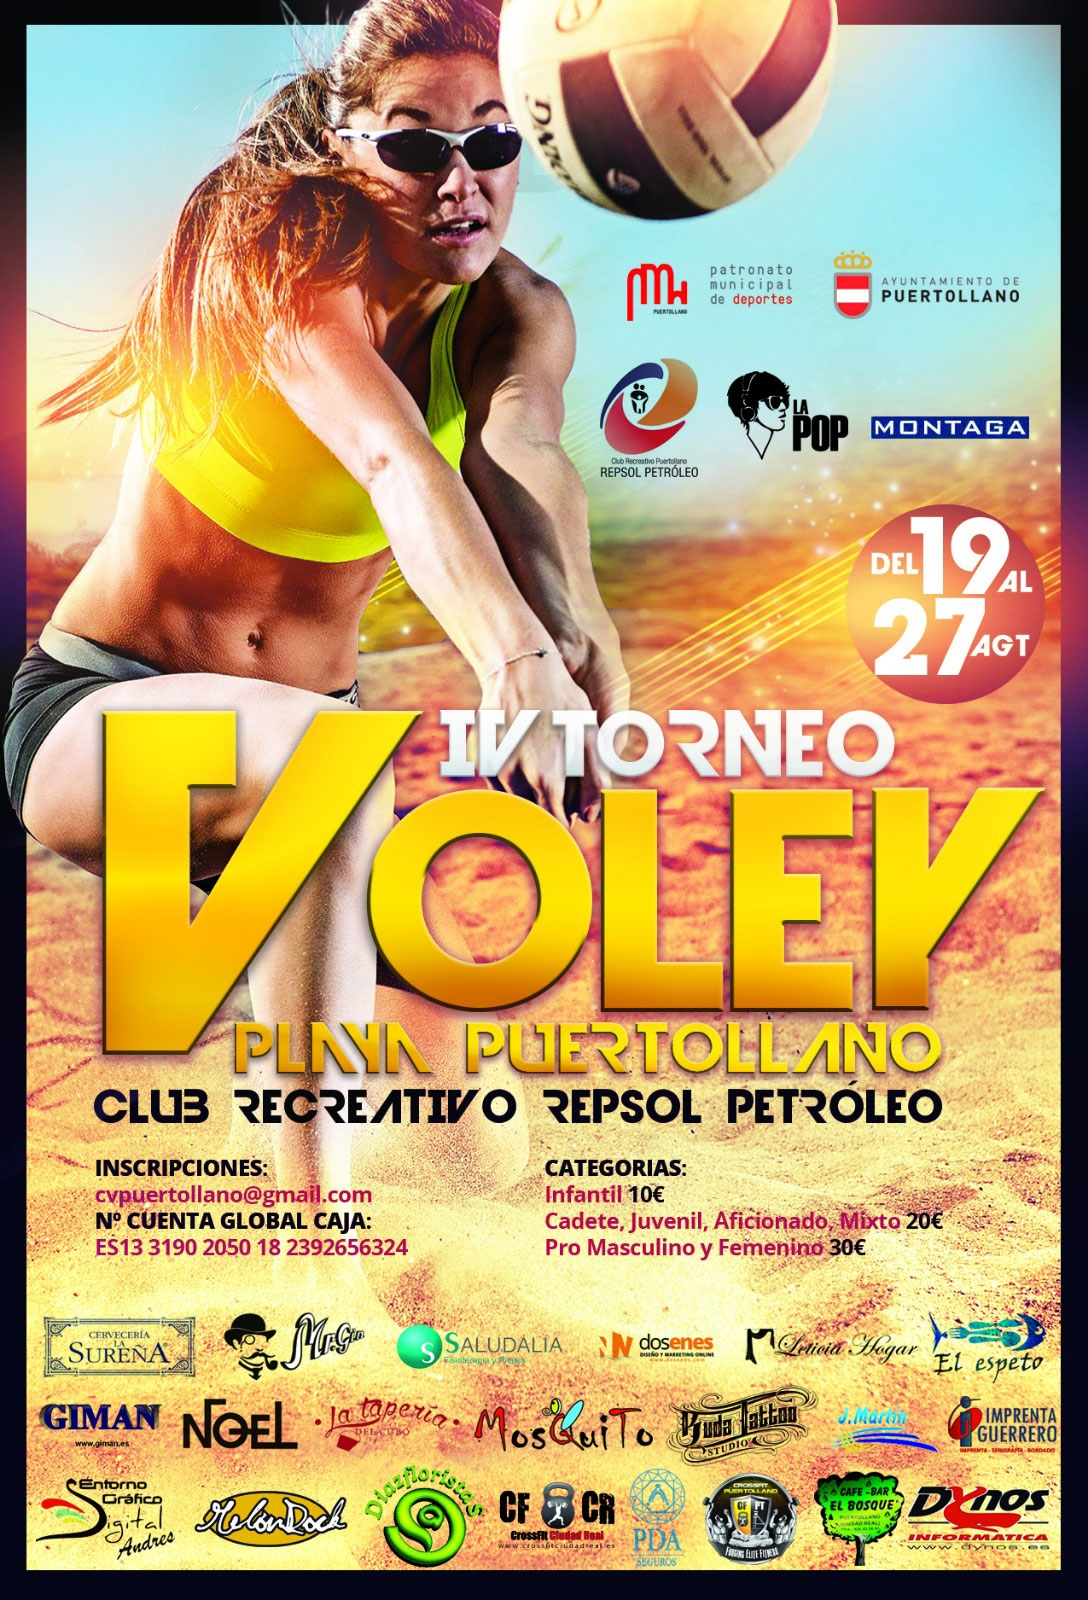 IV Torneo Voley Playa Puertollano